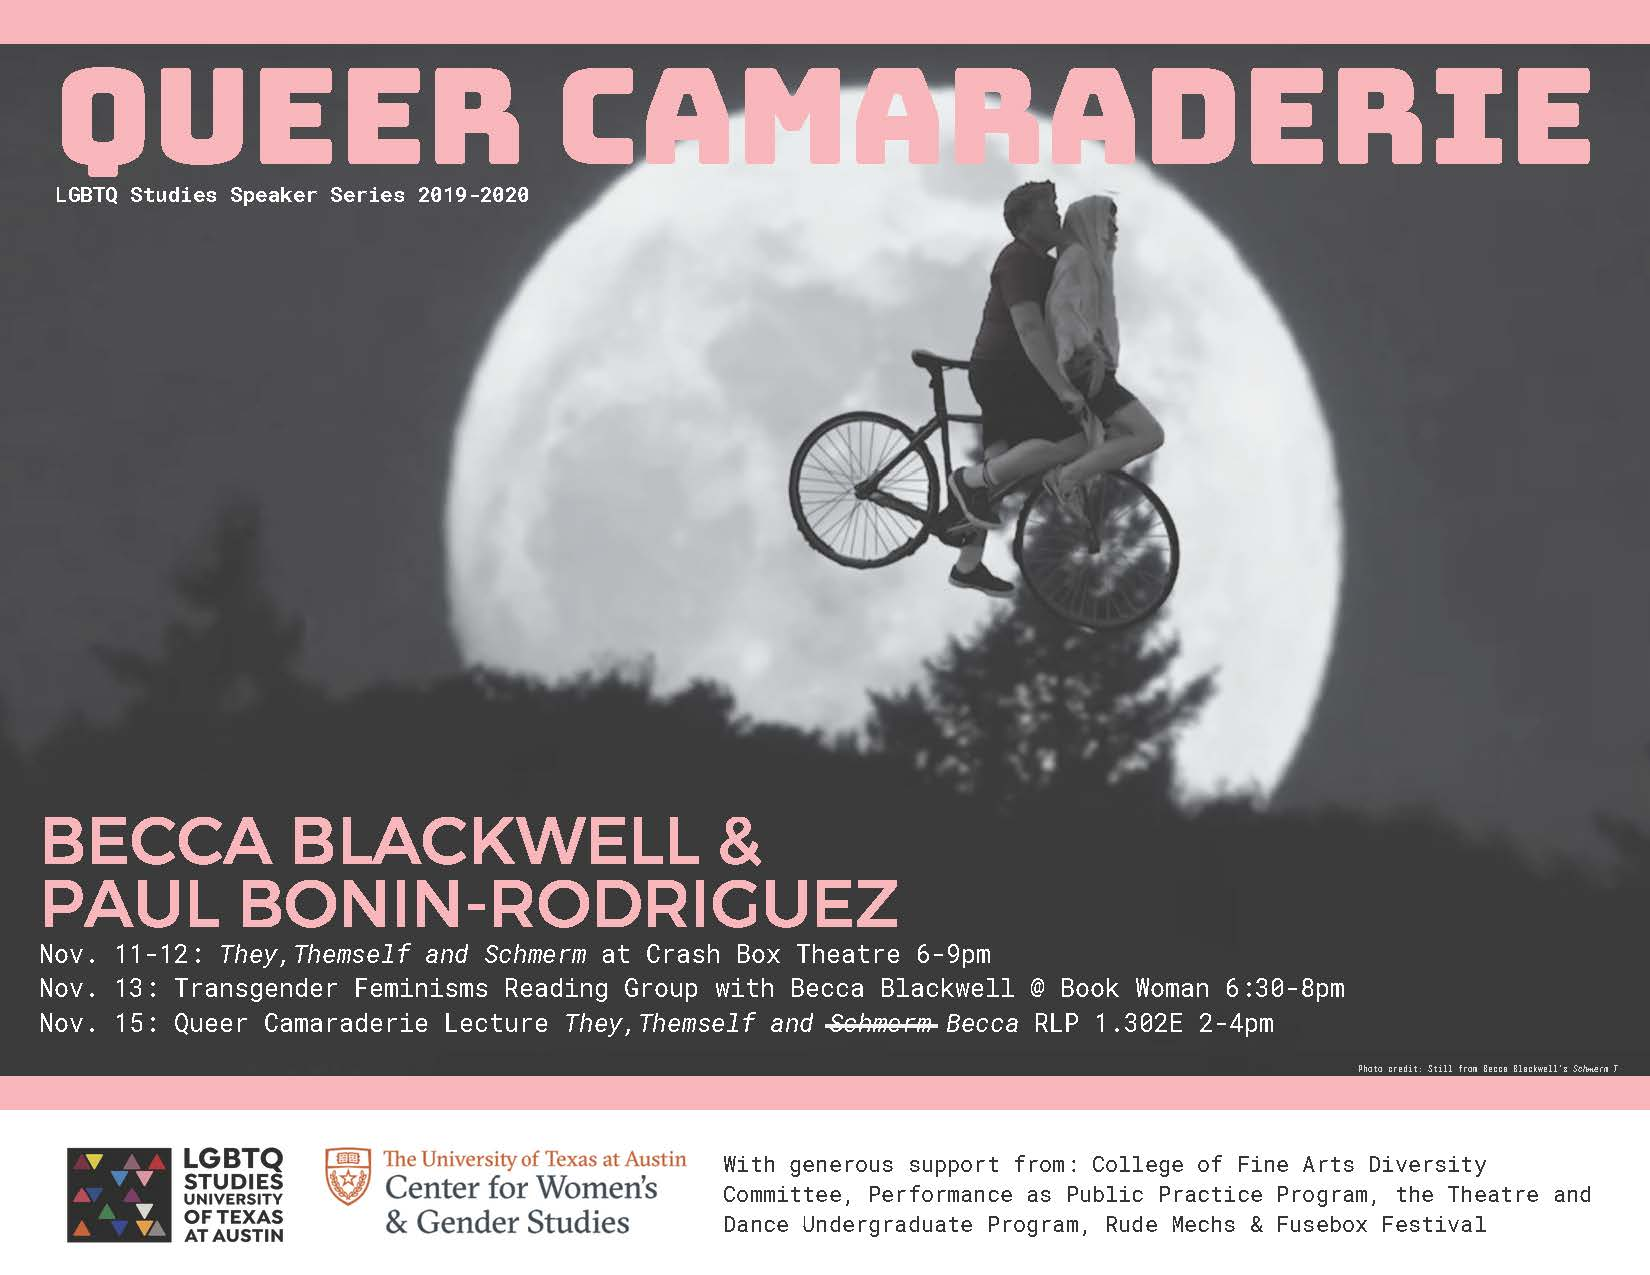 Queer Camaraderie is back with Becca Blackwell